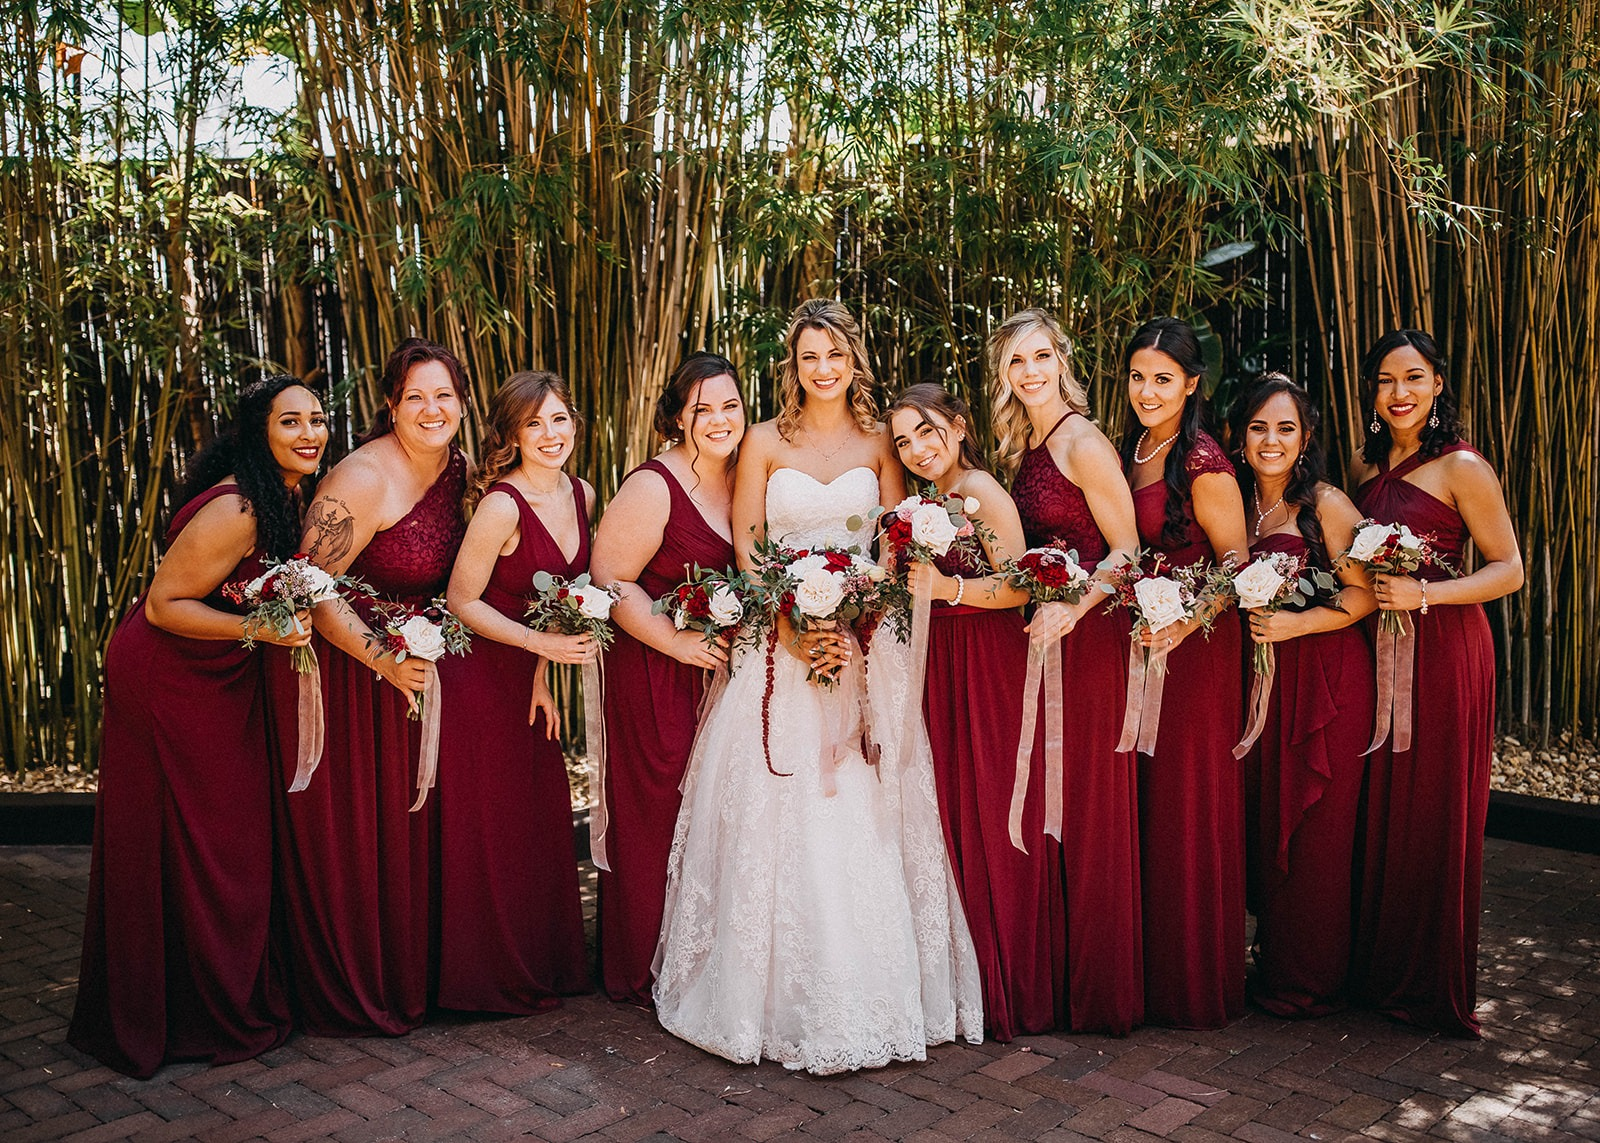 Beautiful Deep Red Maroon Bride and Bridesmaids in Long David's Bridal Dresses in outdoor bamboo courtyard at historic Tampa Bay wedding venue NOVA 535 in Downtown St. Pete